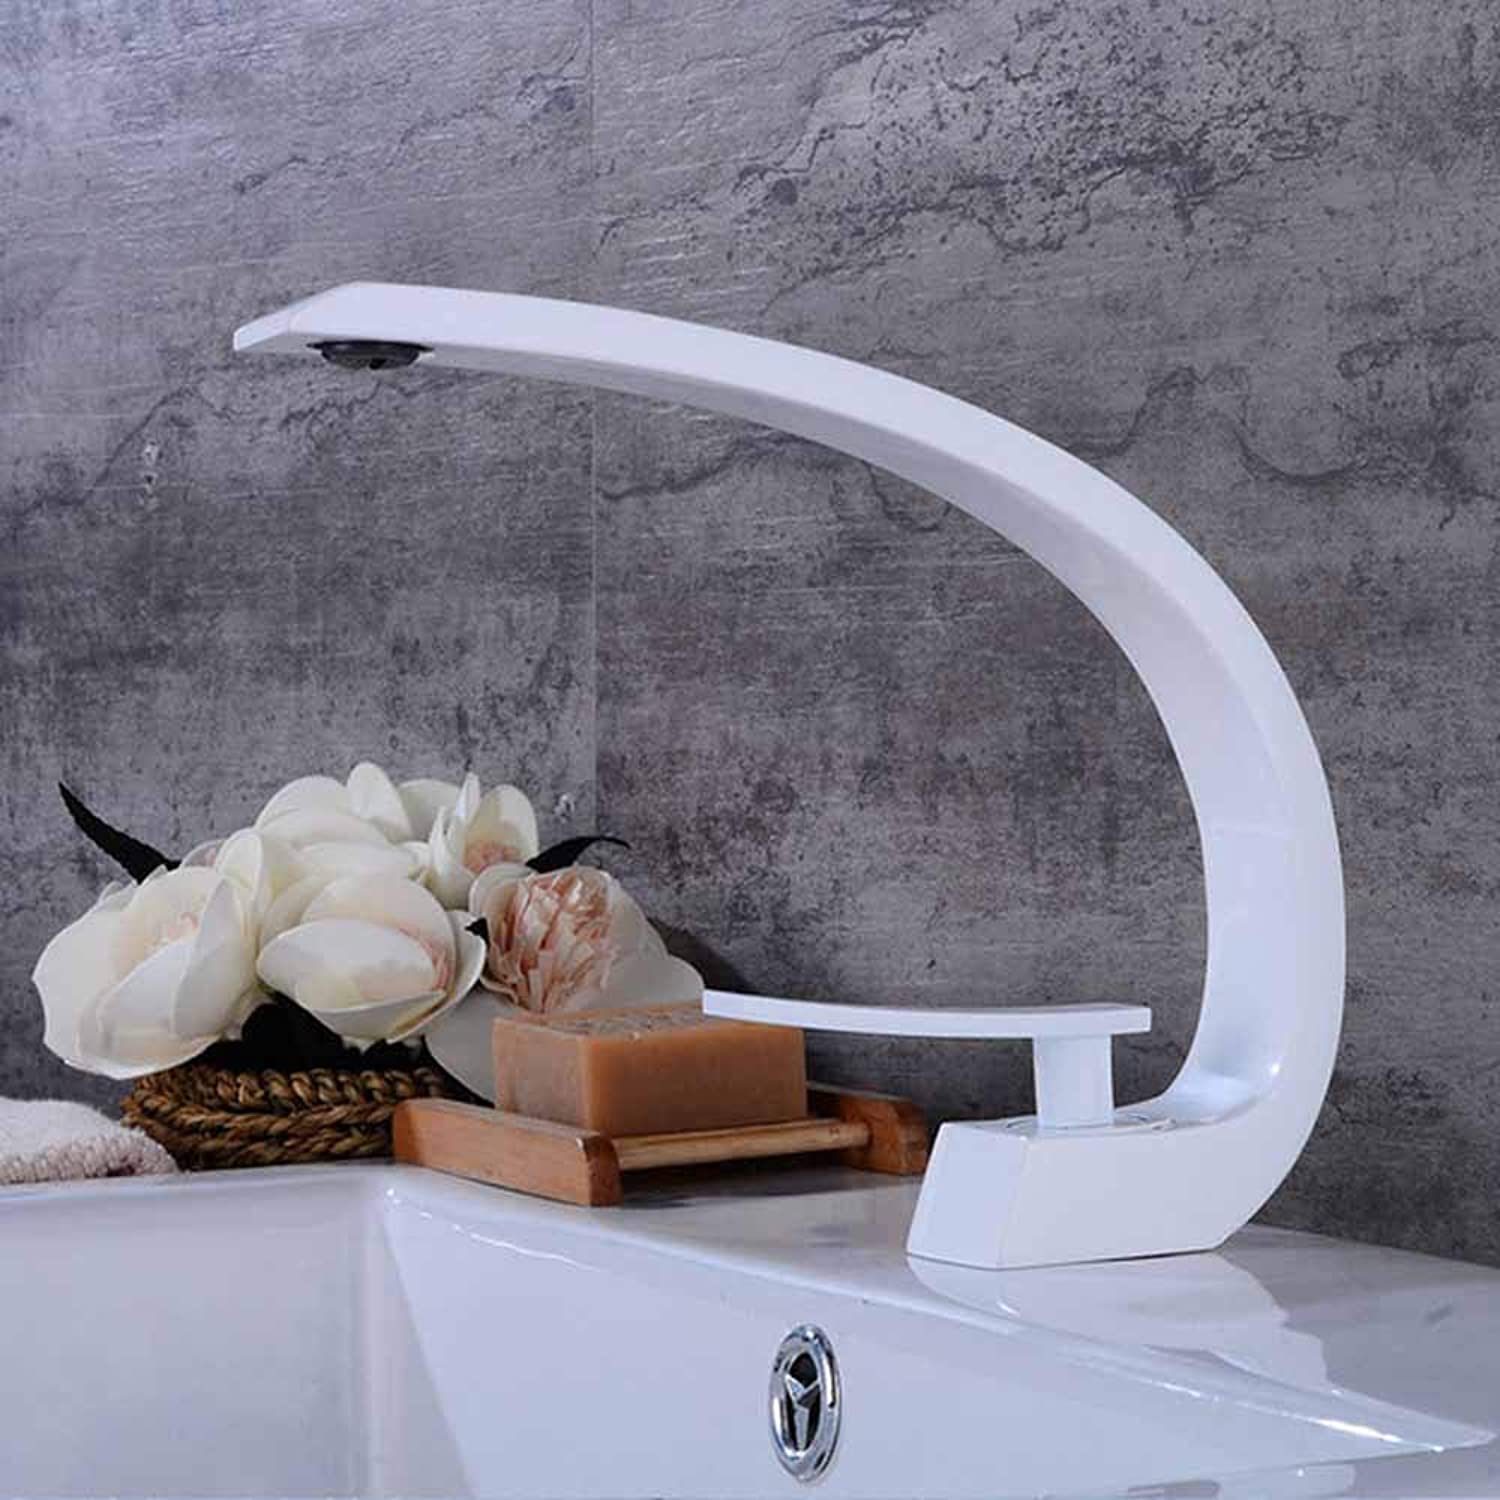 JYTNB Modern Bathroom Counter Basin Faucet, Paint Process Lead Free Solid Brass Single Lever One Hole Deck Mount Hot Cold Mixer Sink Faucet Washbasin Lavatory Washroom Bathroom Sink Tap